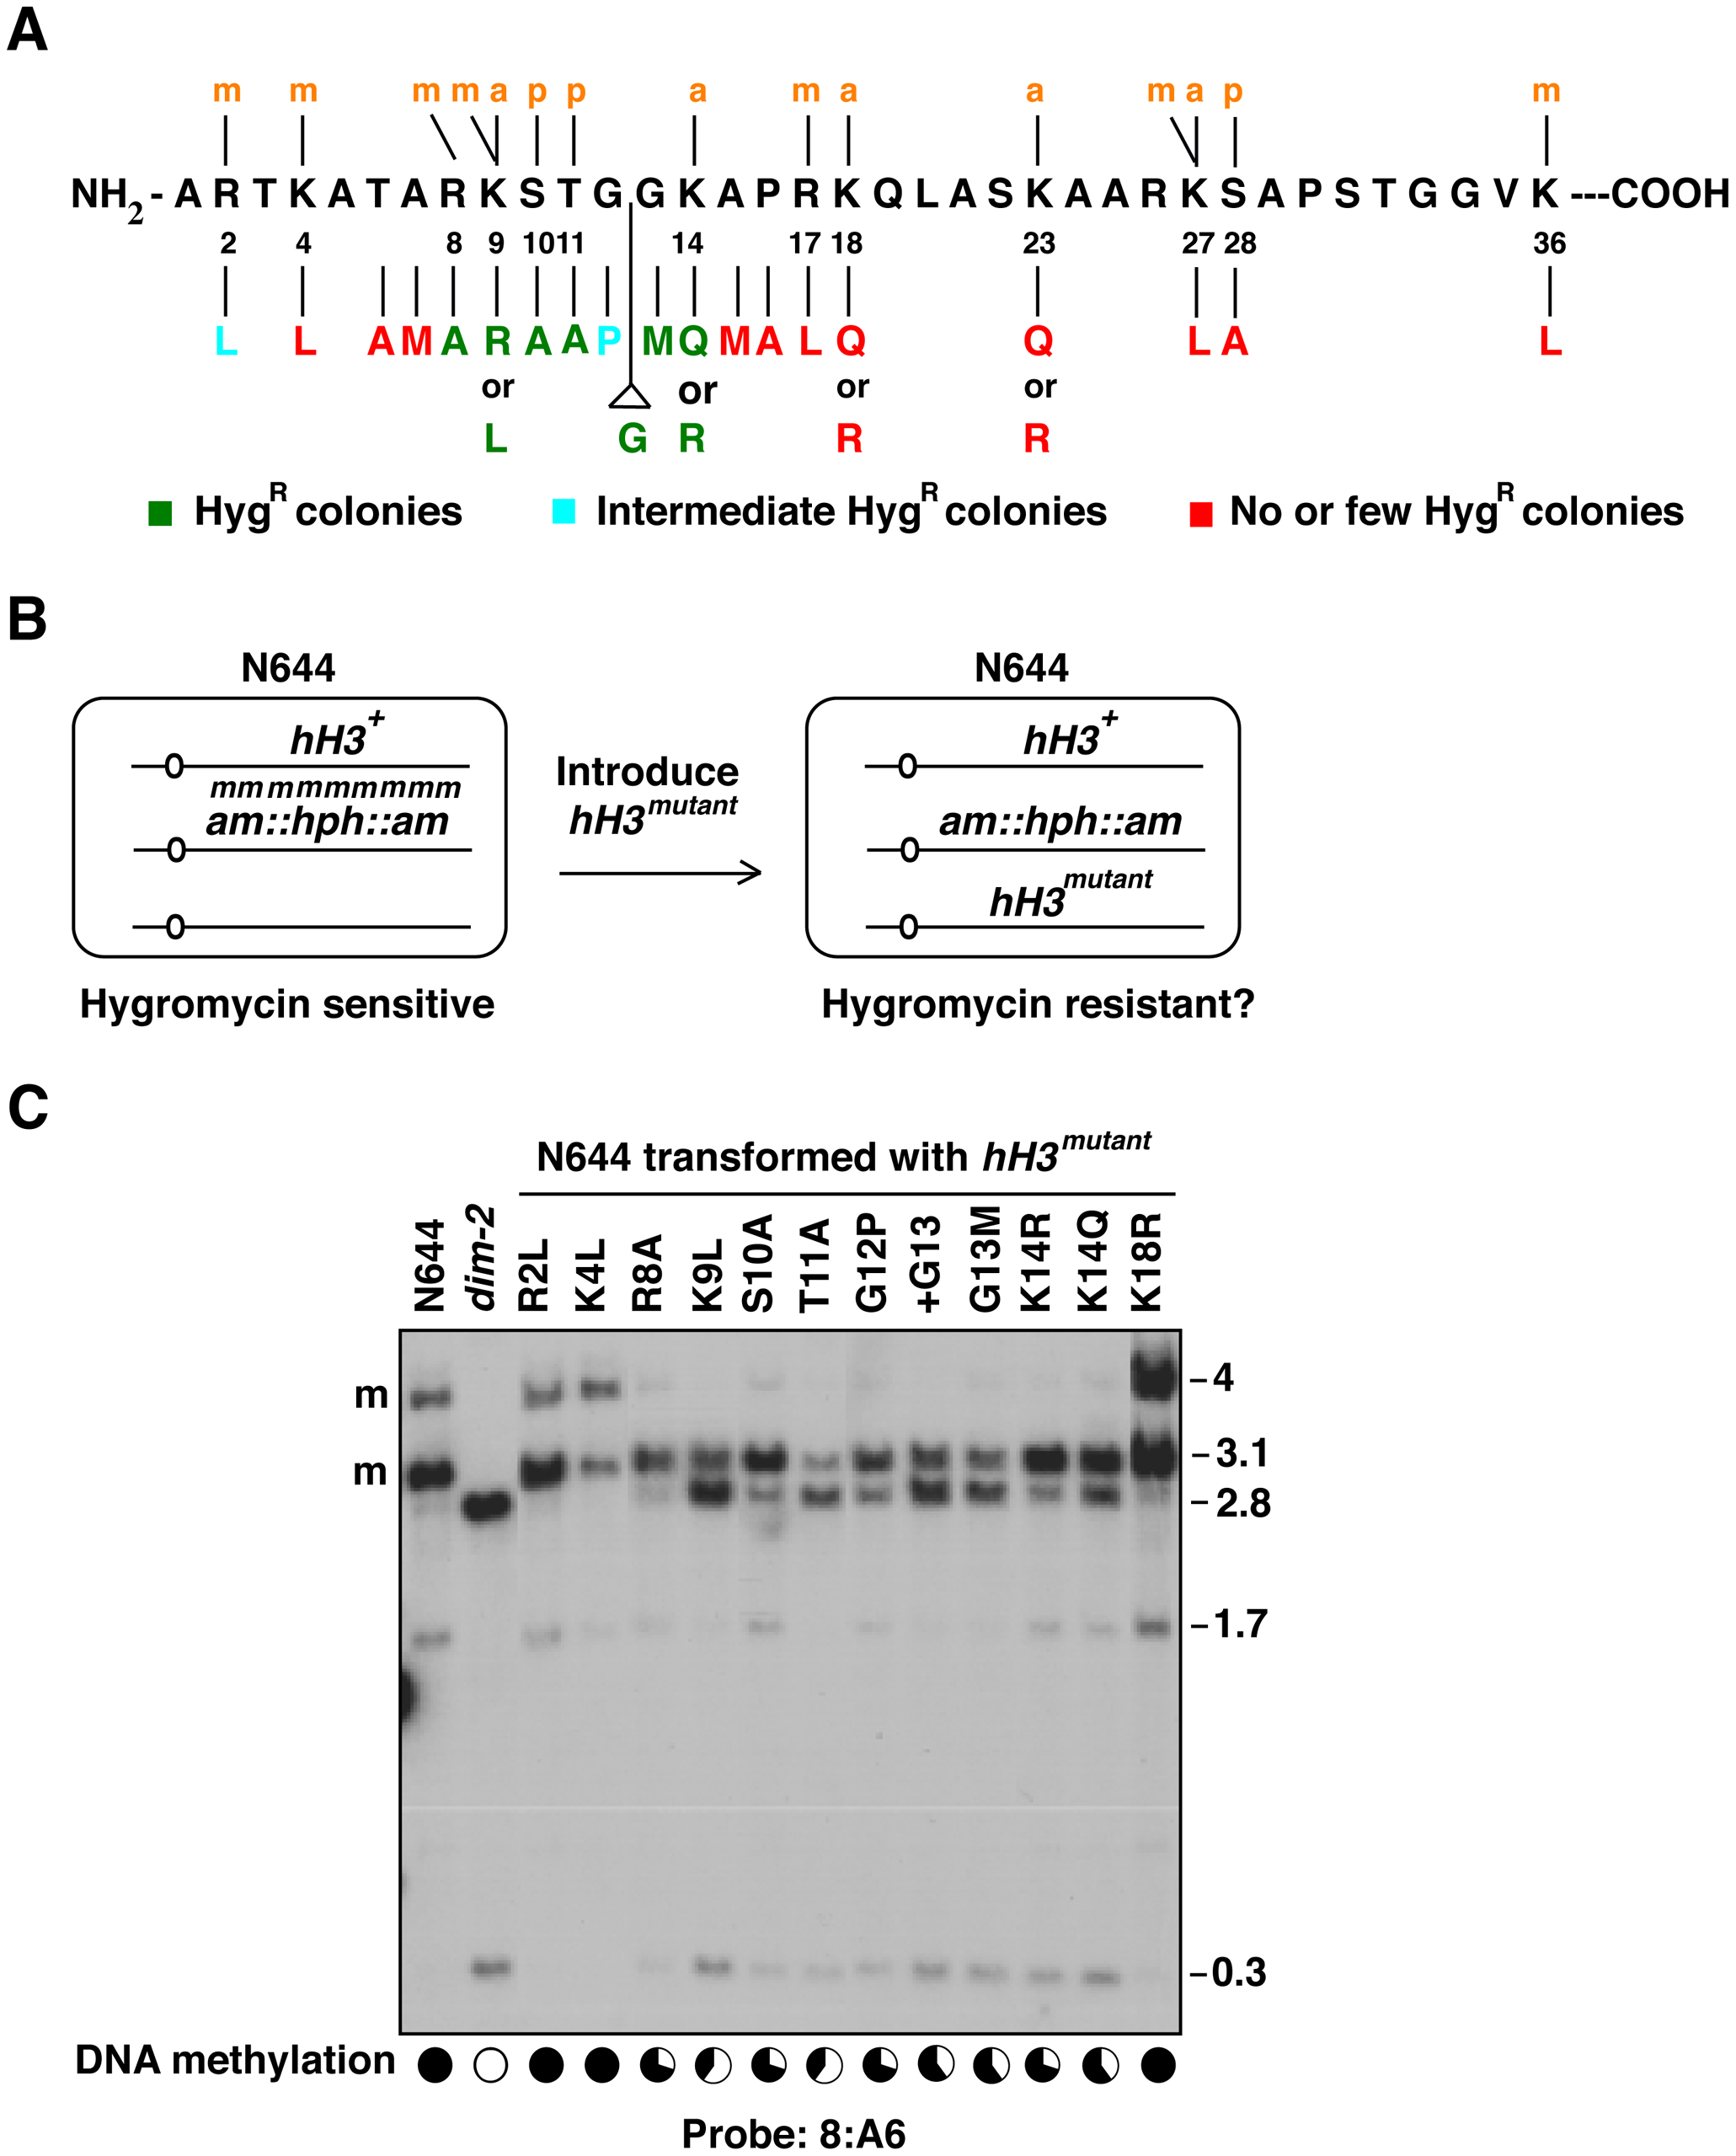 Reactivation of a methylation-silenced transgene by amino acid substitutions in the N-terminal tail of histone H3.